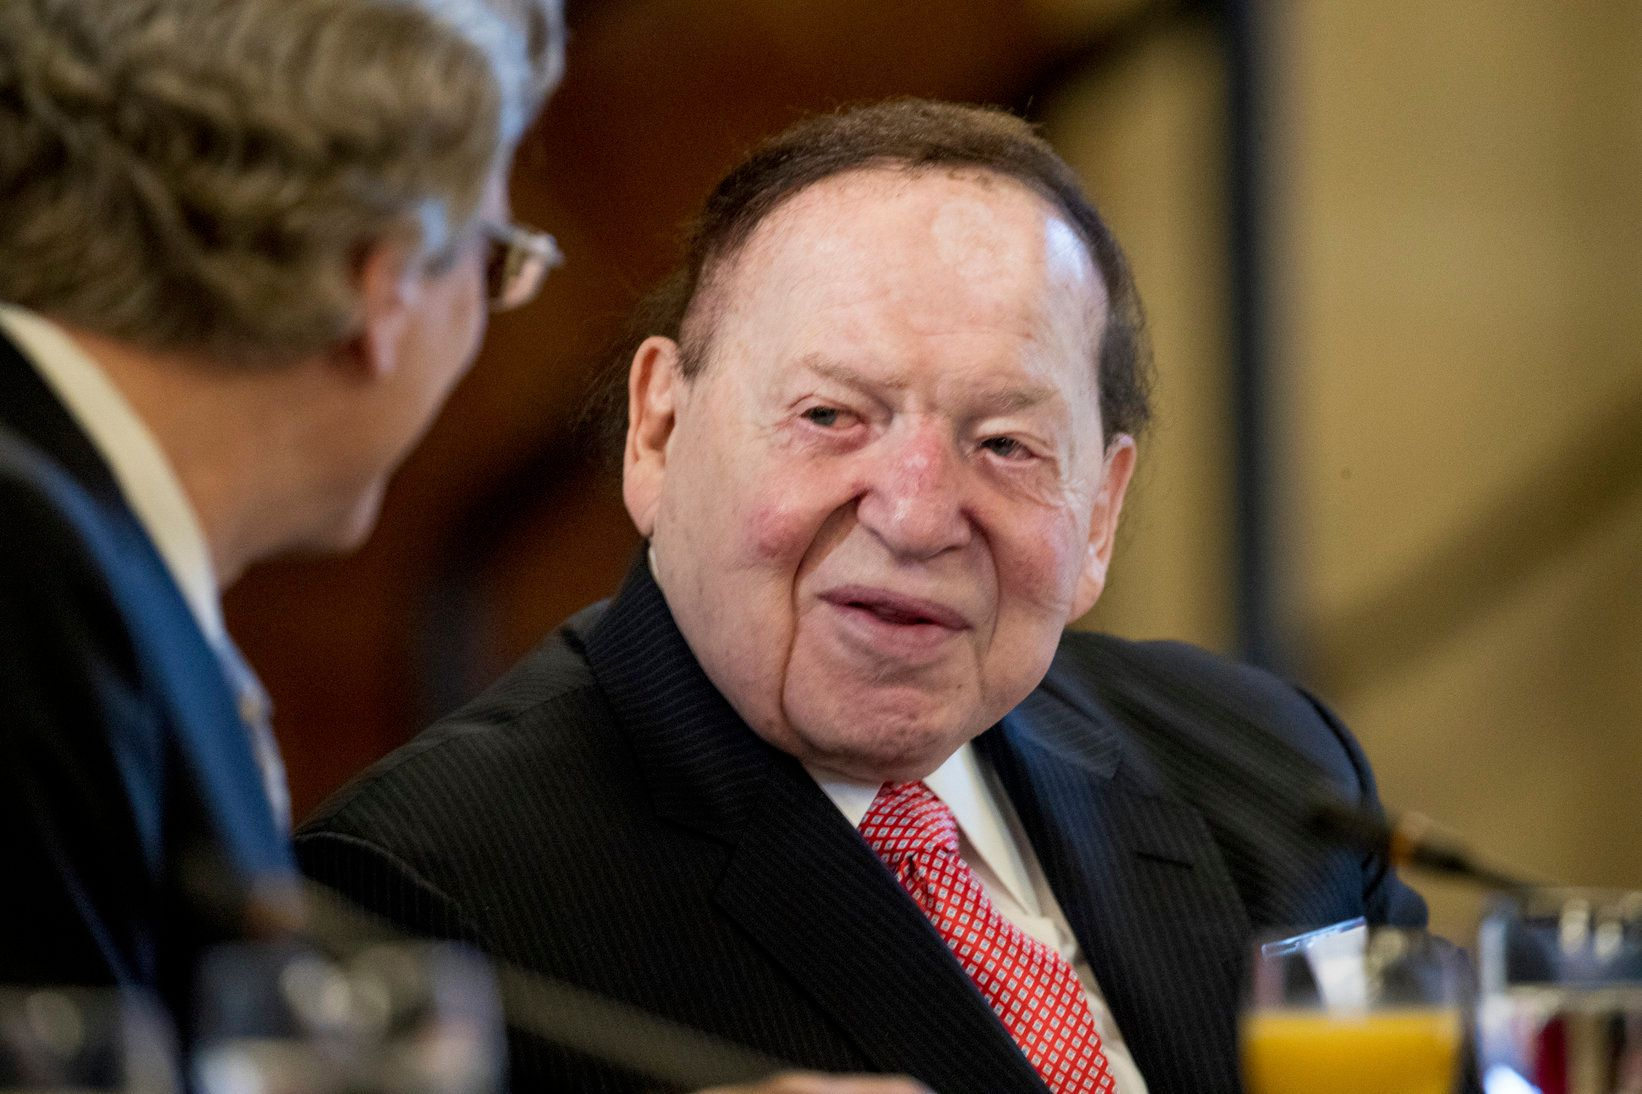 FILE - In this Feb. 10, 2017 file photo, Chief Executive of Las Vegas Sands Corporation Sheldon Adelson is seen at a business roundtable with Japanese Prime Minister Shinzo Abe at the U.S. Chamber of Commerce in Washington. Adelson is not in good health and has not being at his company's offices in Las Vegas since around Christmas Day, 2018. Adelson's poor health was revealed Monday, Feb. 25, 2019 by one of his company's attorneys during a court hearing in a years-old case brought by a Hong Kong businessman. Attorney James Jimmerson told the court the condition of the 85-year-old billionaire is dire. (AP Photo/Andrew Harnik, File)